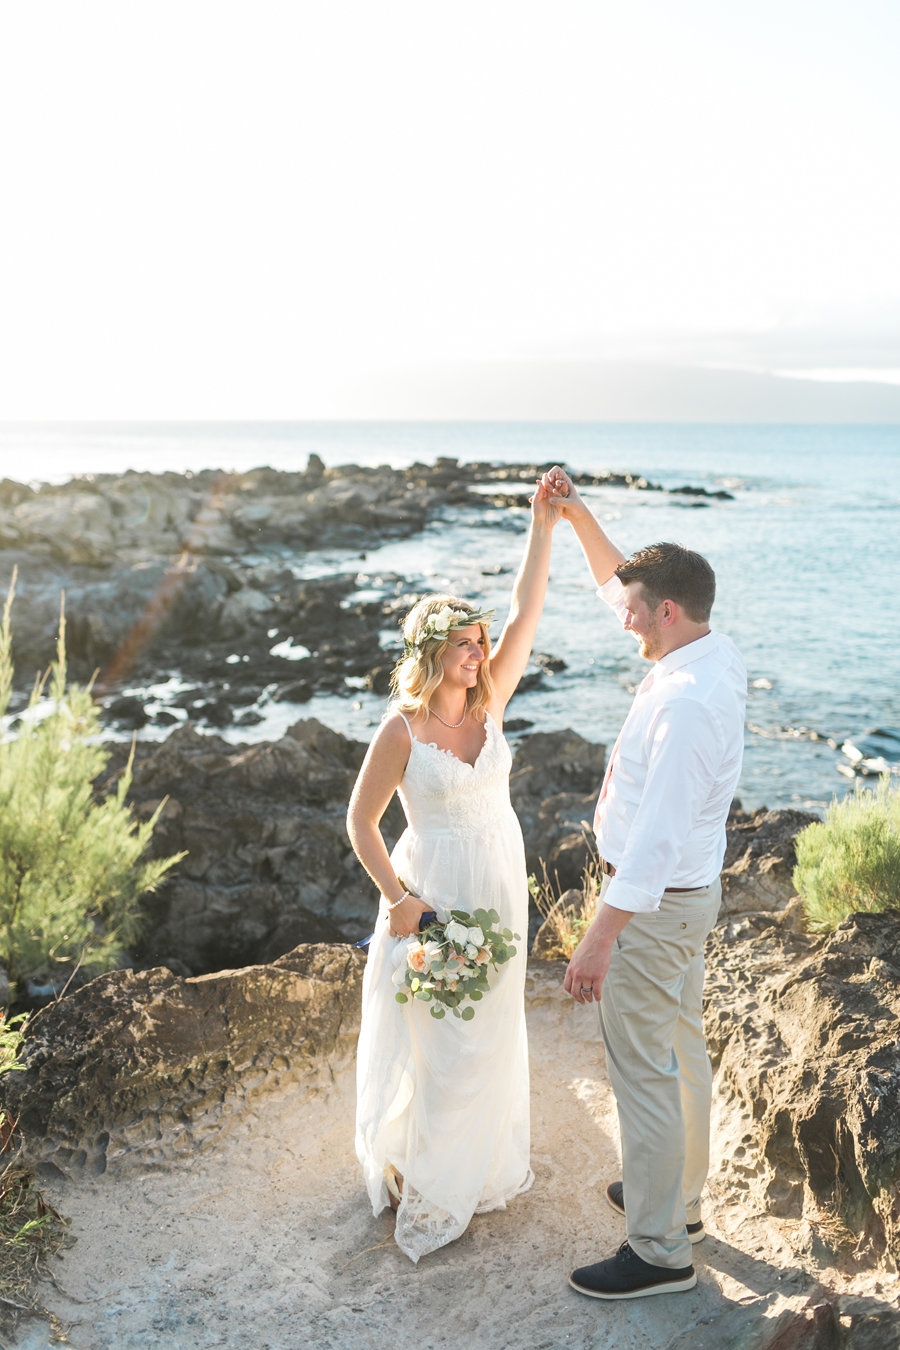 The-Ritz-Carlton-Kapalua-Maui-Wedding-Caitlin-Cathey-Photo-074